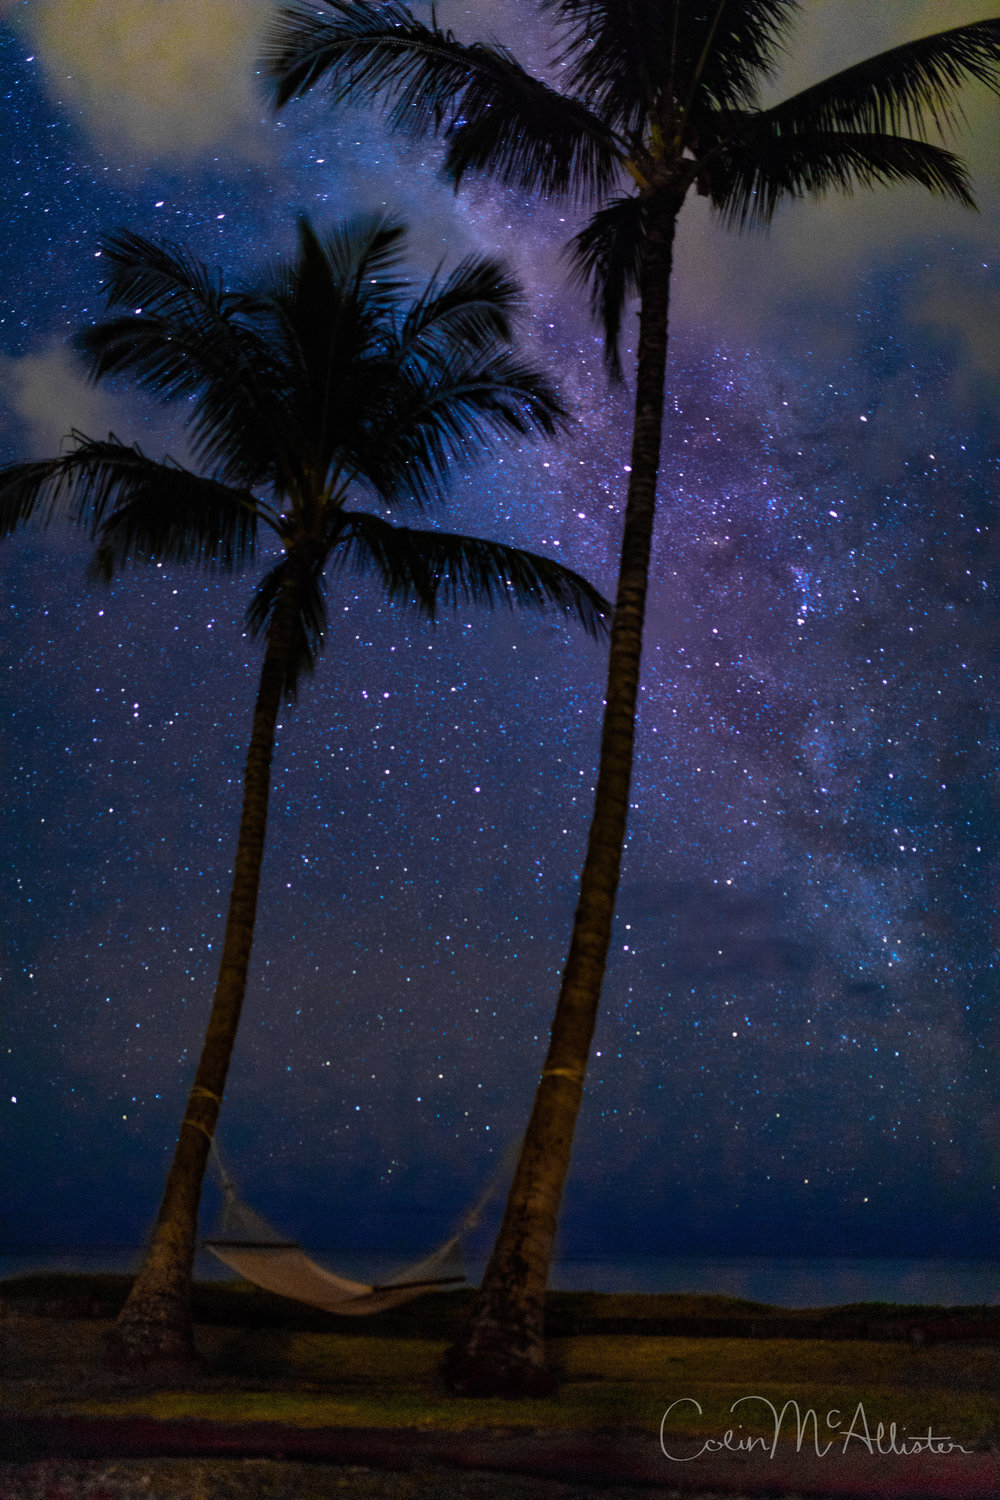 Milky Way with Palm Trees!